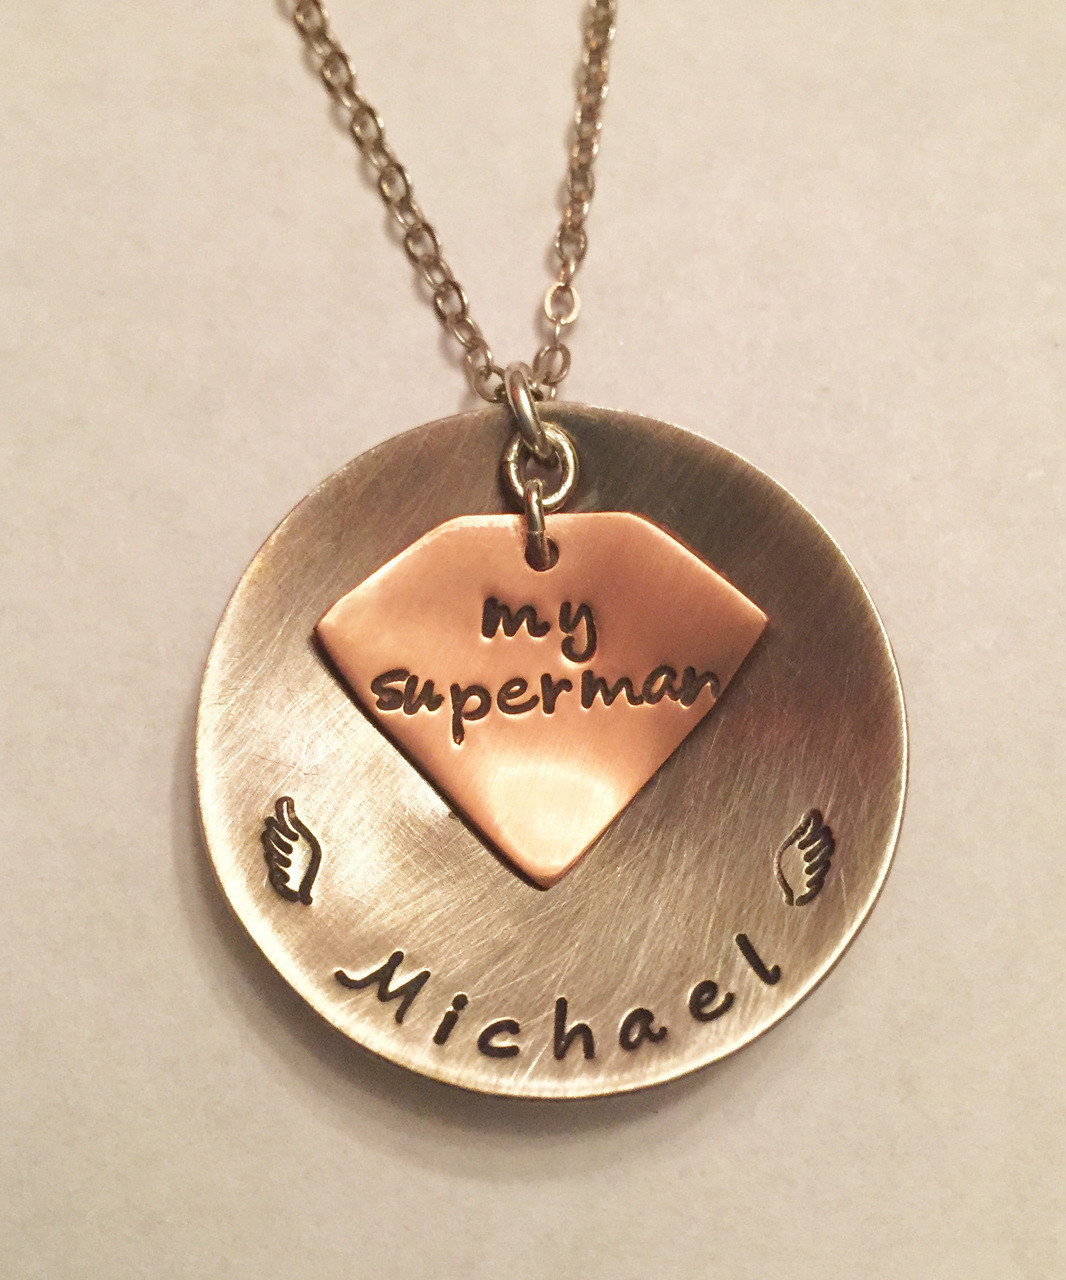 Husband Memorial Necklace Sterling Heart Songs Jewelry